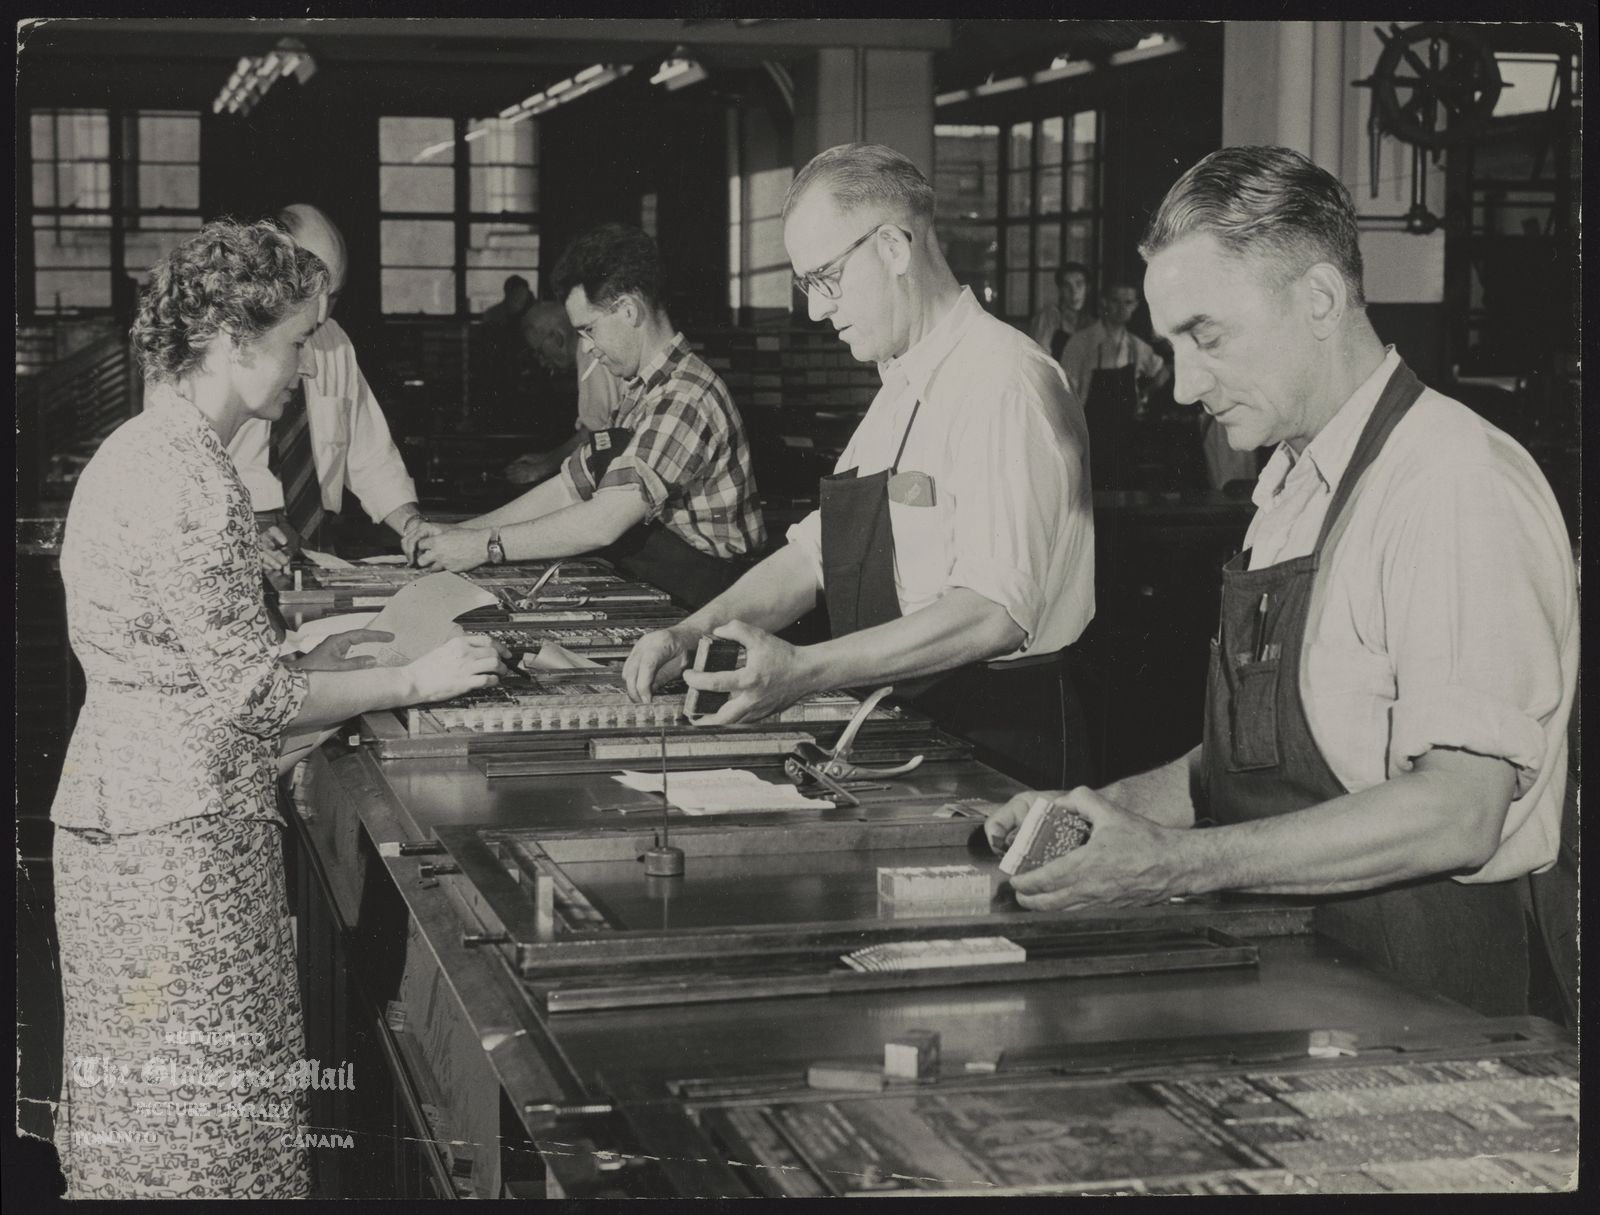 TORONTO GLOBE AND MAIL - HISTORICAL - PRODUCTION [The Globe and Mail - History - Production -- William H. Wright Building - Composing Room?. Credit: The Globe and Mail. Historical note: Production process: Makeup men place the galleys of type into page forms. When zinc cuts from the engraving room have been added, the forms are locked and sent to the stereotyping department where paperboard mats or impressions of the pages are made in a machine that operates at a pressure of 15,000 pounds a square-inch. Molten lead is poured over the paperboard mats and in 15 seconds lead plates are ready to be trimmed and dispatched to the presses. Taken from Dec. 14, 1957 edition.]